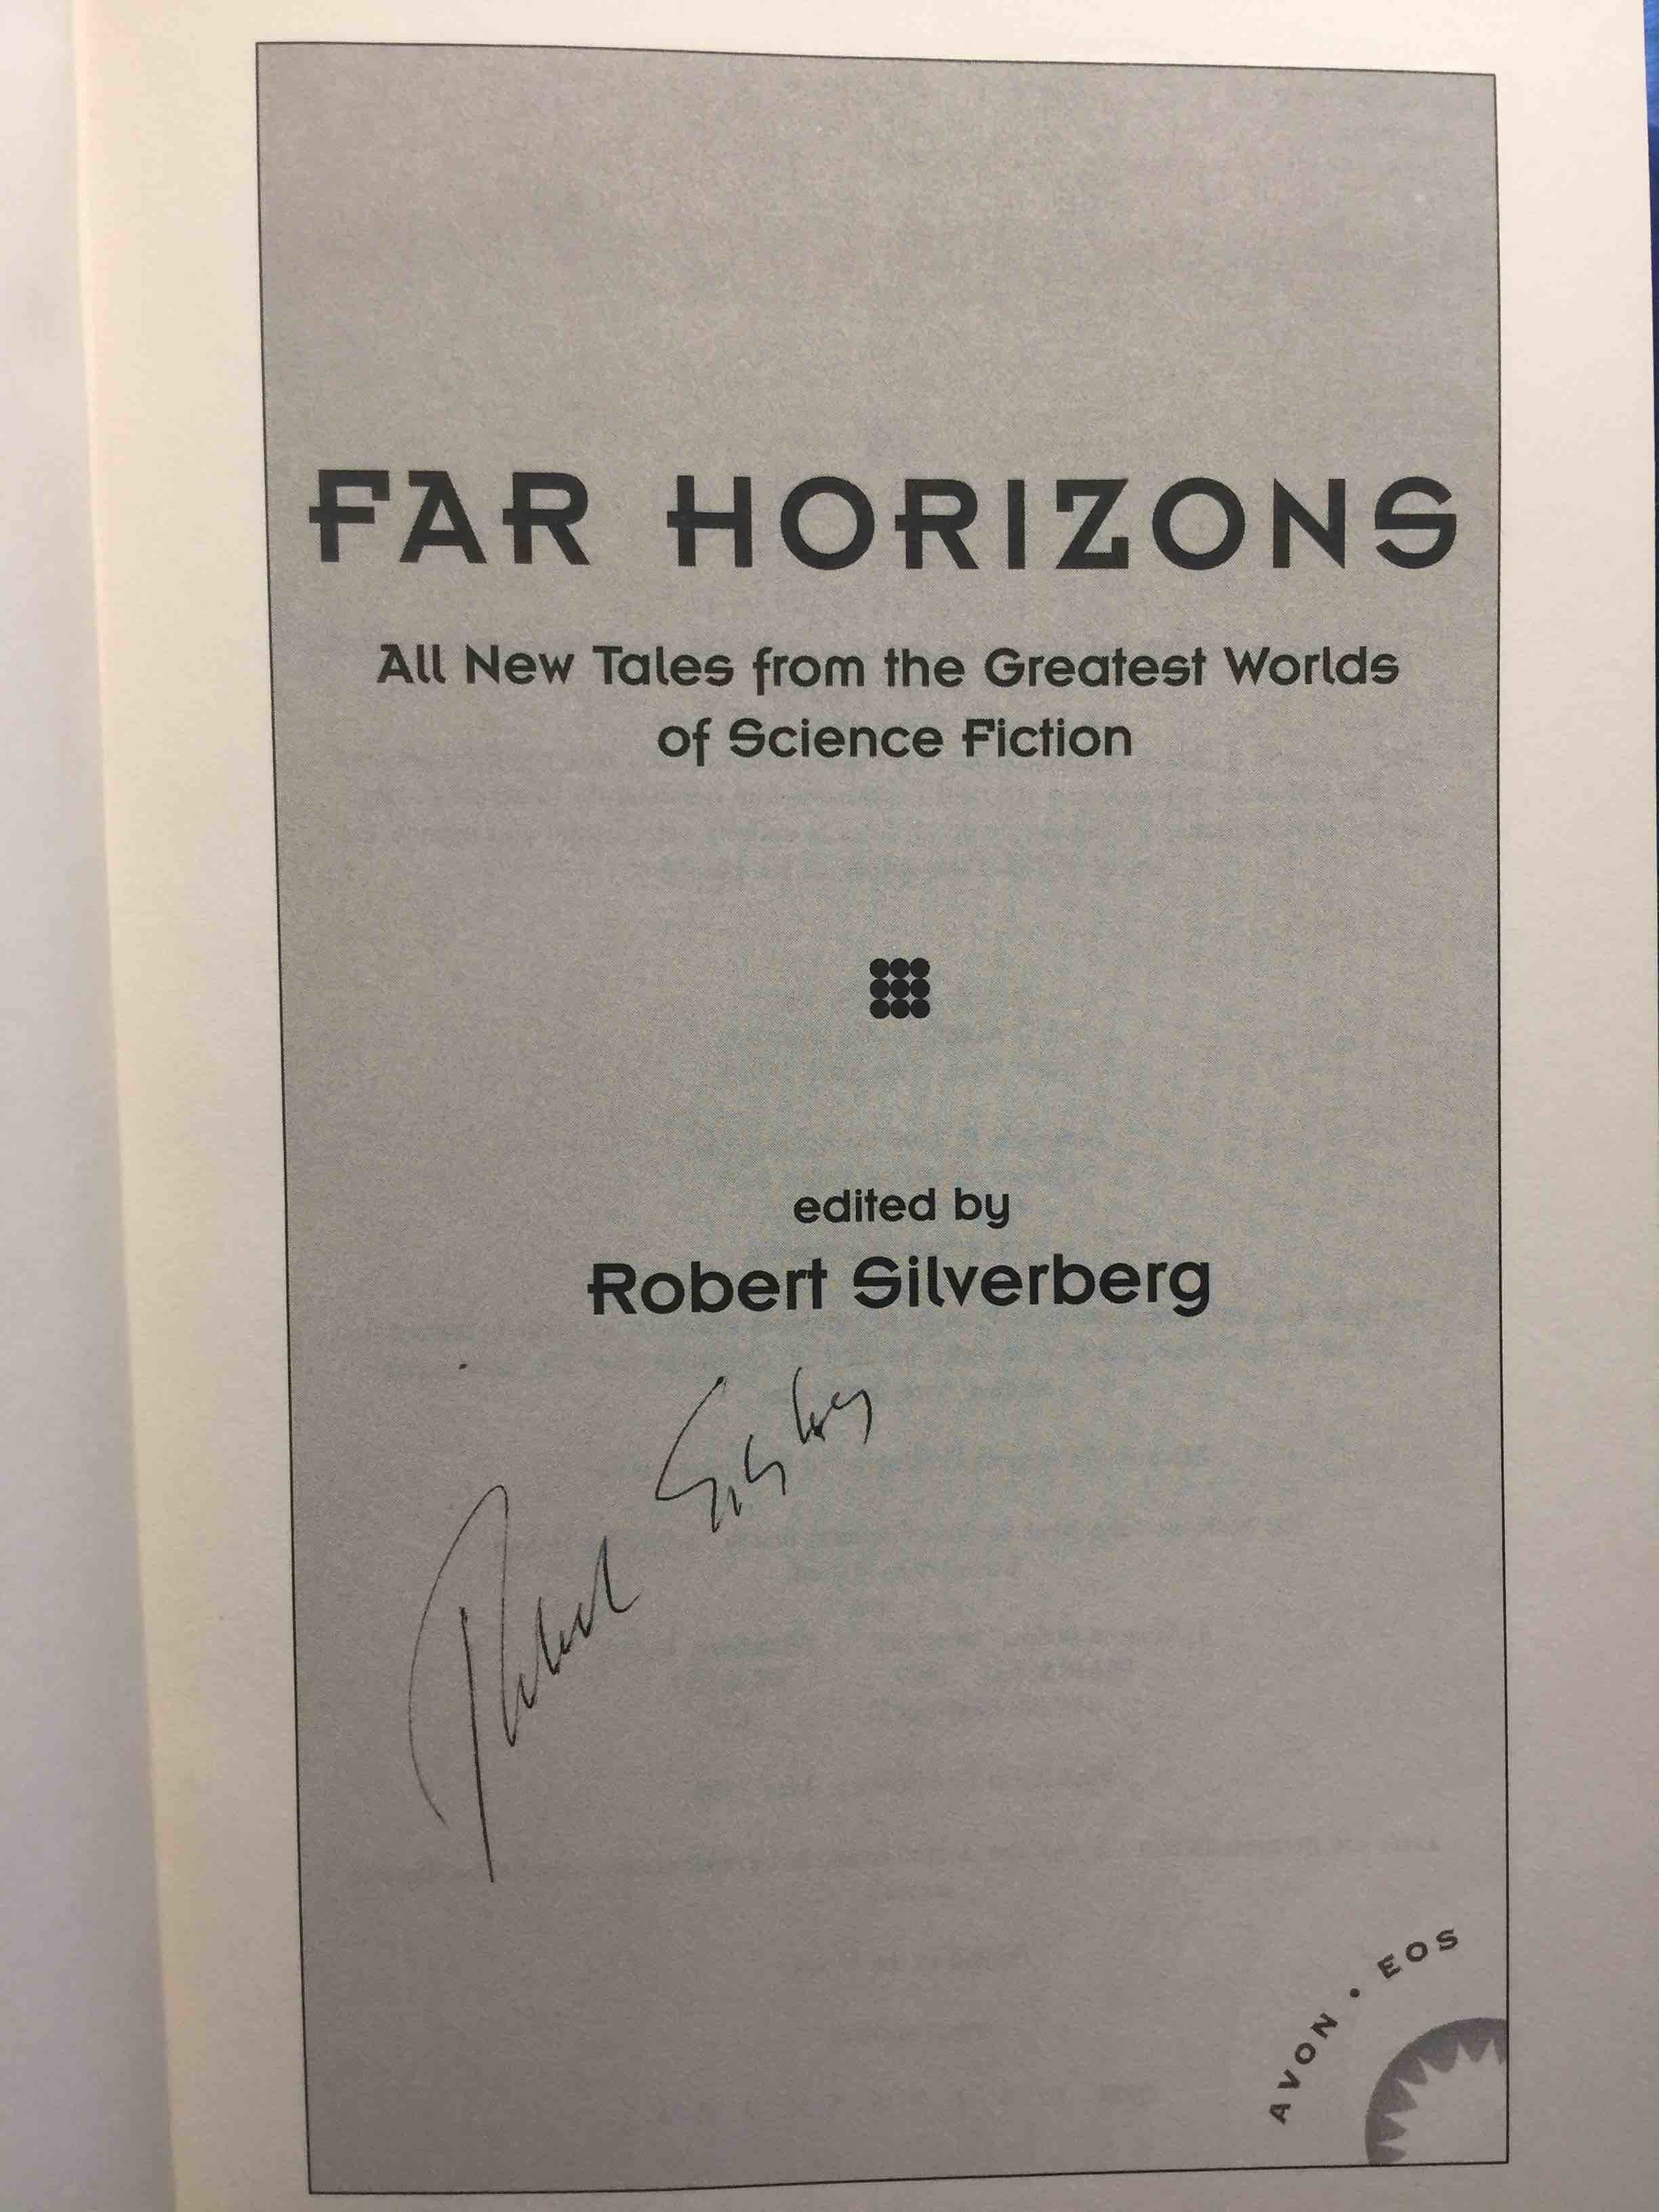 [ANTHOLOGY, SIGNED] SILVERBERG, ROBERT, EDITOR.( GREGORY BENFORD, GREG BEAR, DAVID BRIN,  JOE HALDEMAN, SIGNED ) - FAR HORIZONS: All New Tales from the Greatest Worlds of Science Fiction.